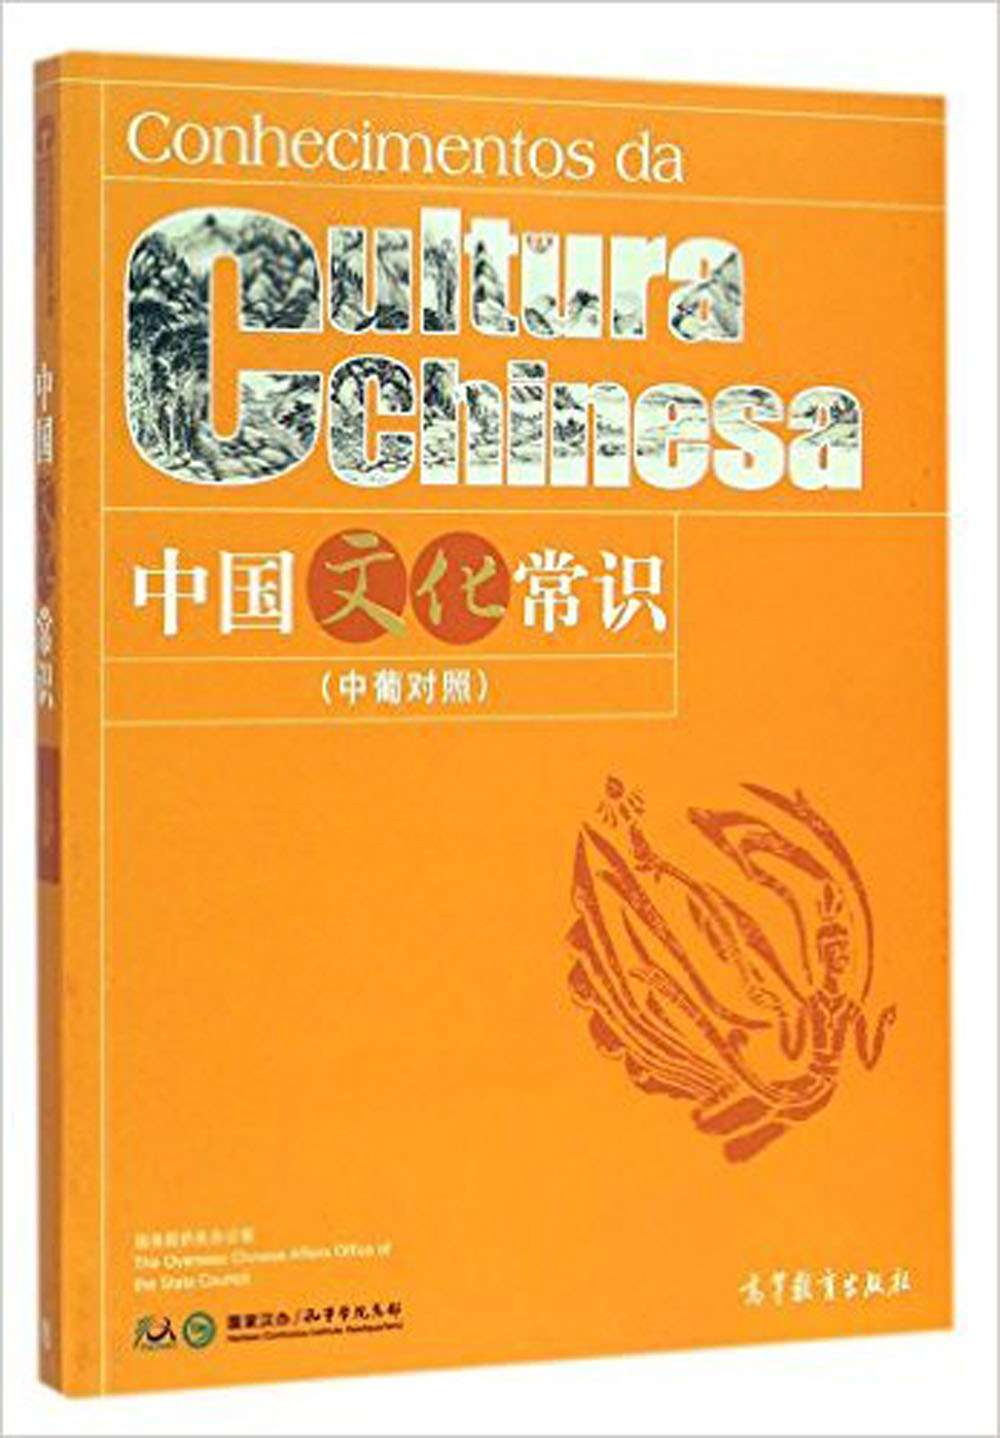 Common Knowledge about Chinese Culture (Language In Chinese and Portuguese) 281 Page for adult learn chinese culture ru content about festival info html page 7